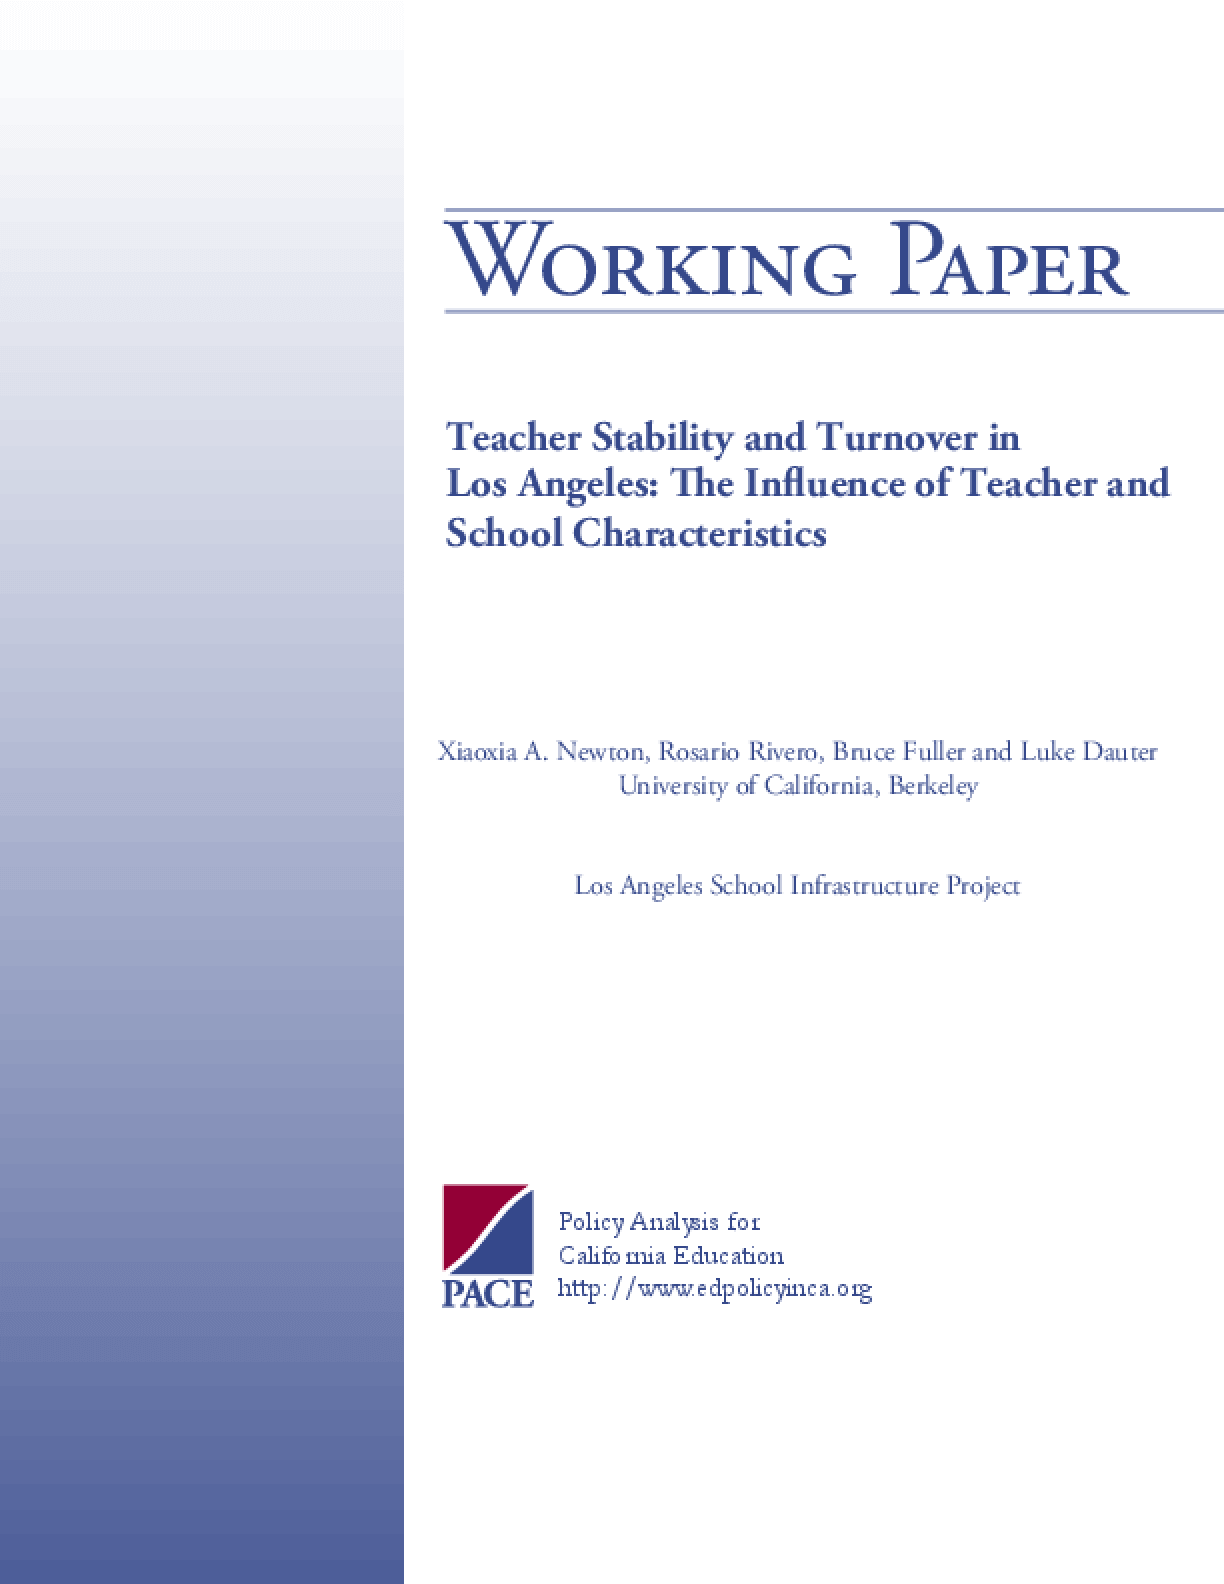 Teacher Stability and Turnover in Los Angeles: The Influence of Teacher and School Characteristics